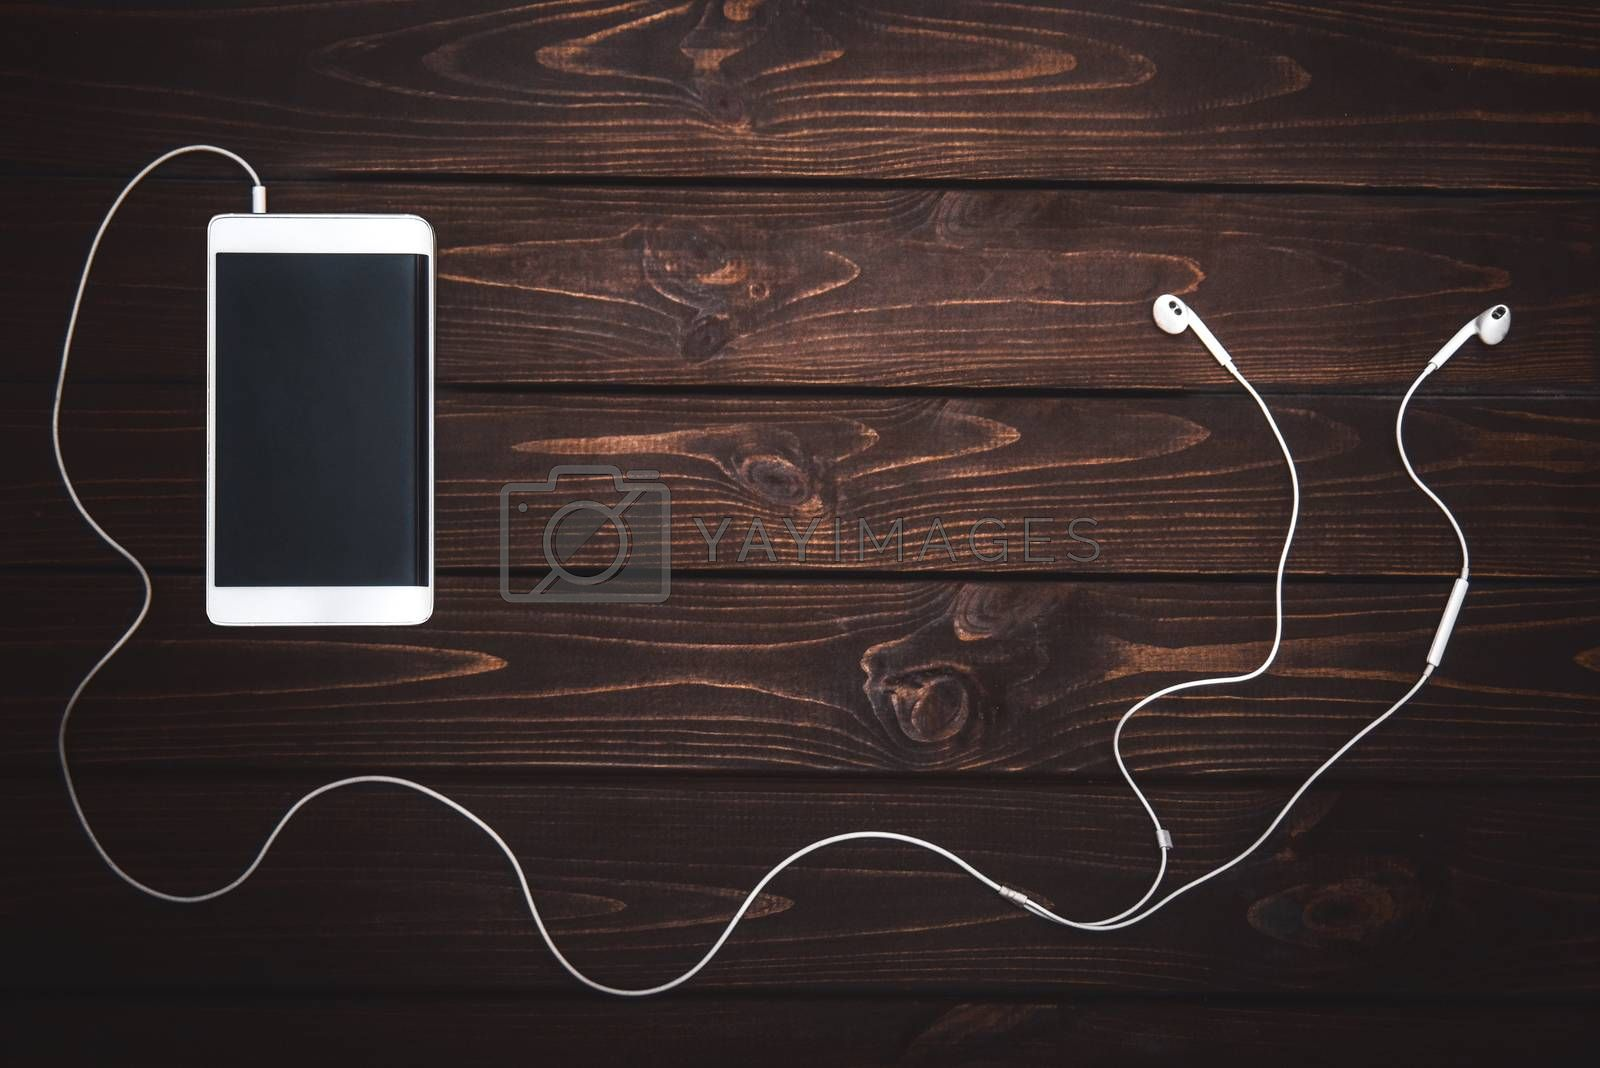 white smartphone with white headphones on wooden background- Image.Listening to music